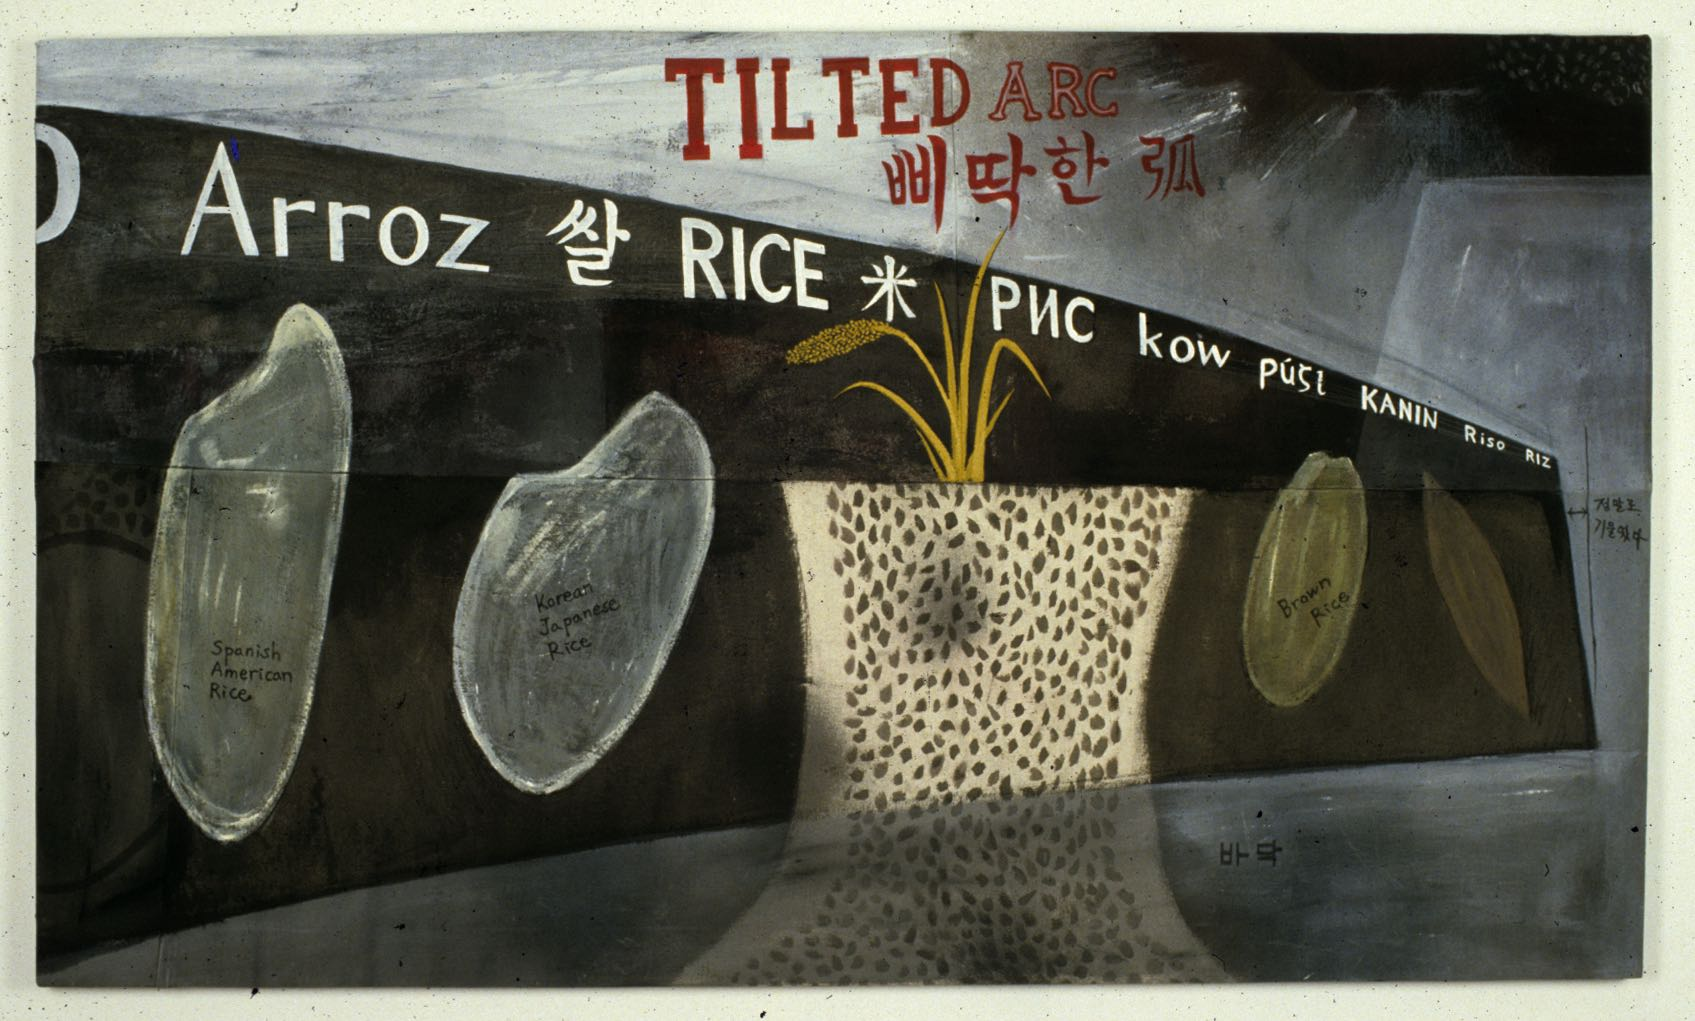 Rice Mural on Tilted Arc